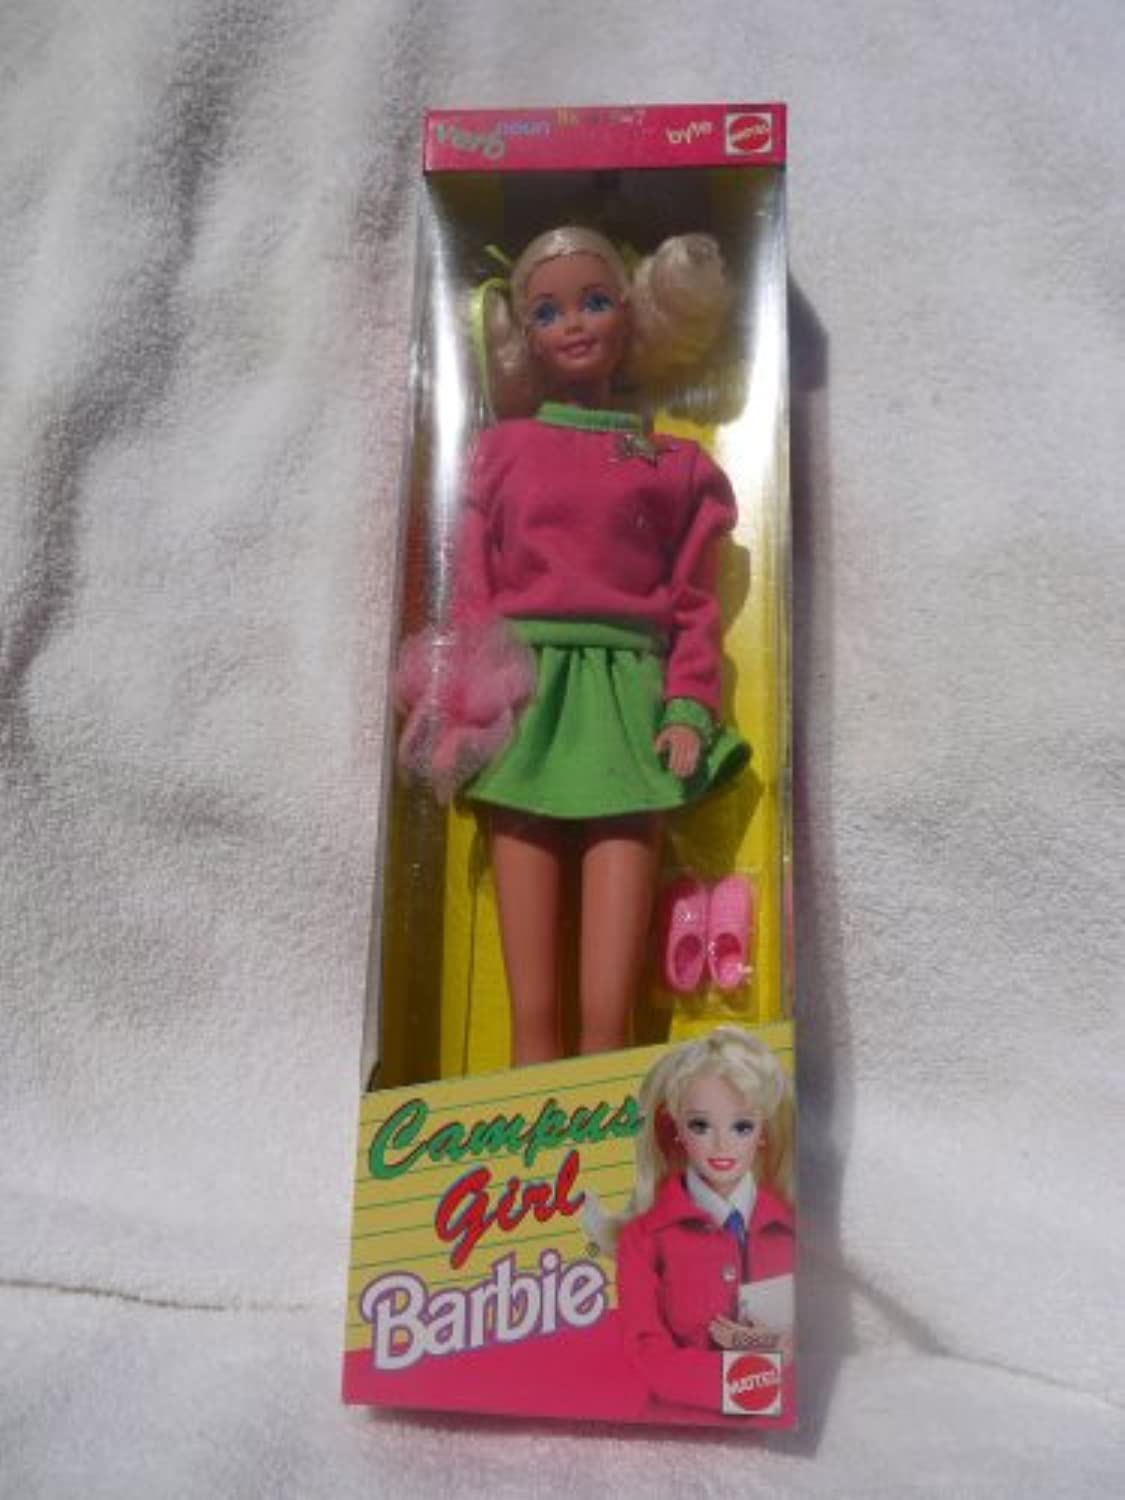 Philippine Campus Girl Barbie in Pink Jersey Top with Bright Green Trim and Short, Full Green Jersey Skirt (1998) - RARE